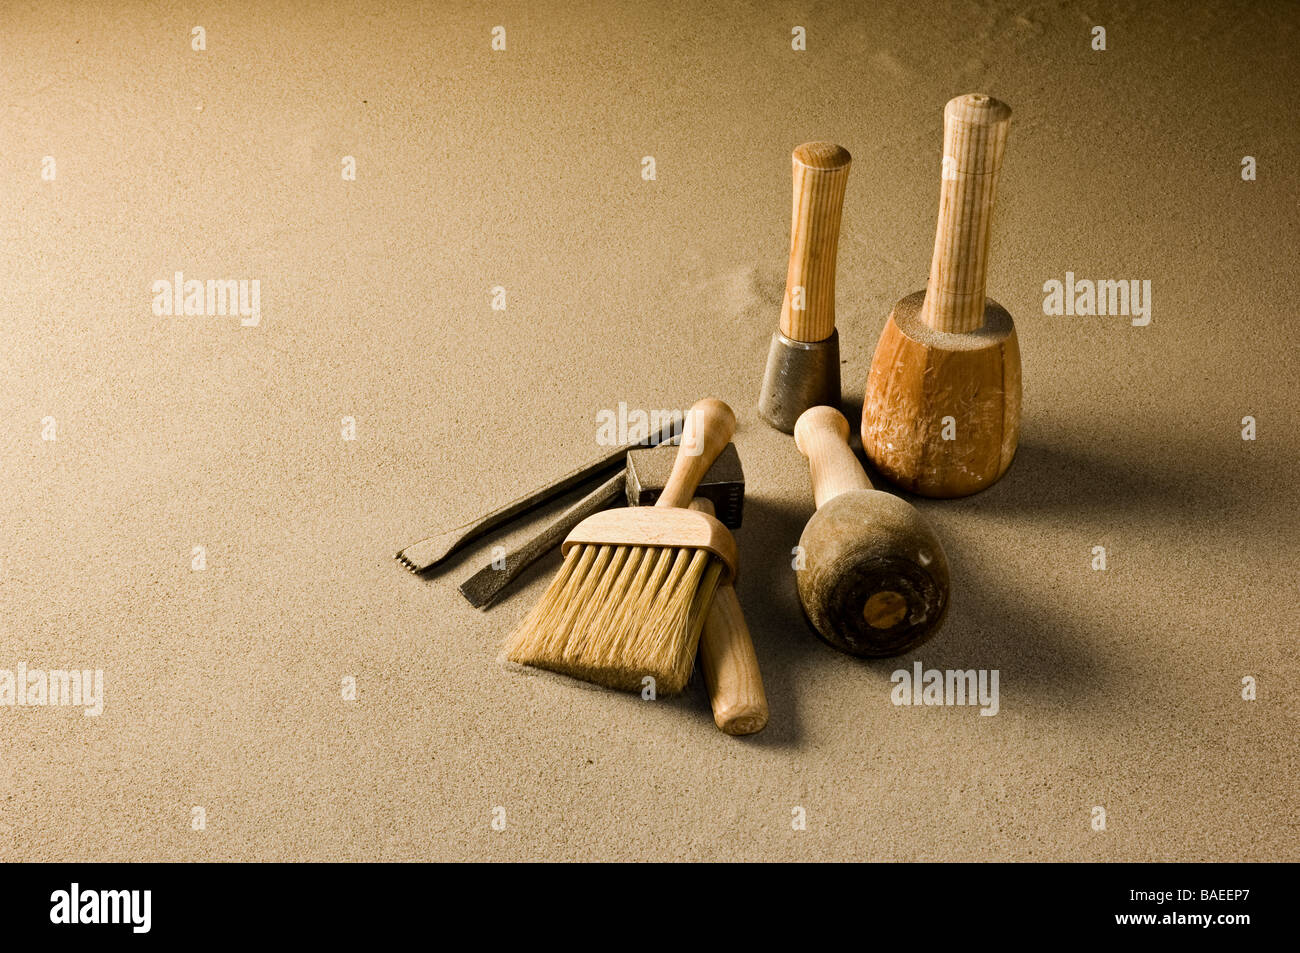 Stone Mason Tools : Stone mason tools stock photo royalty free image